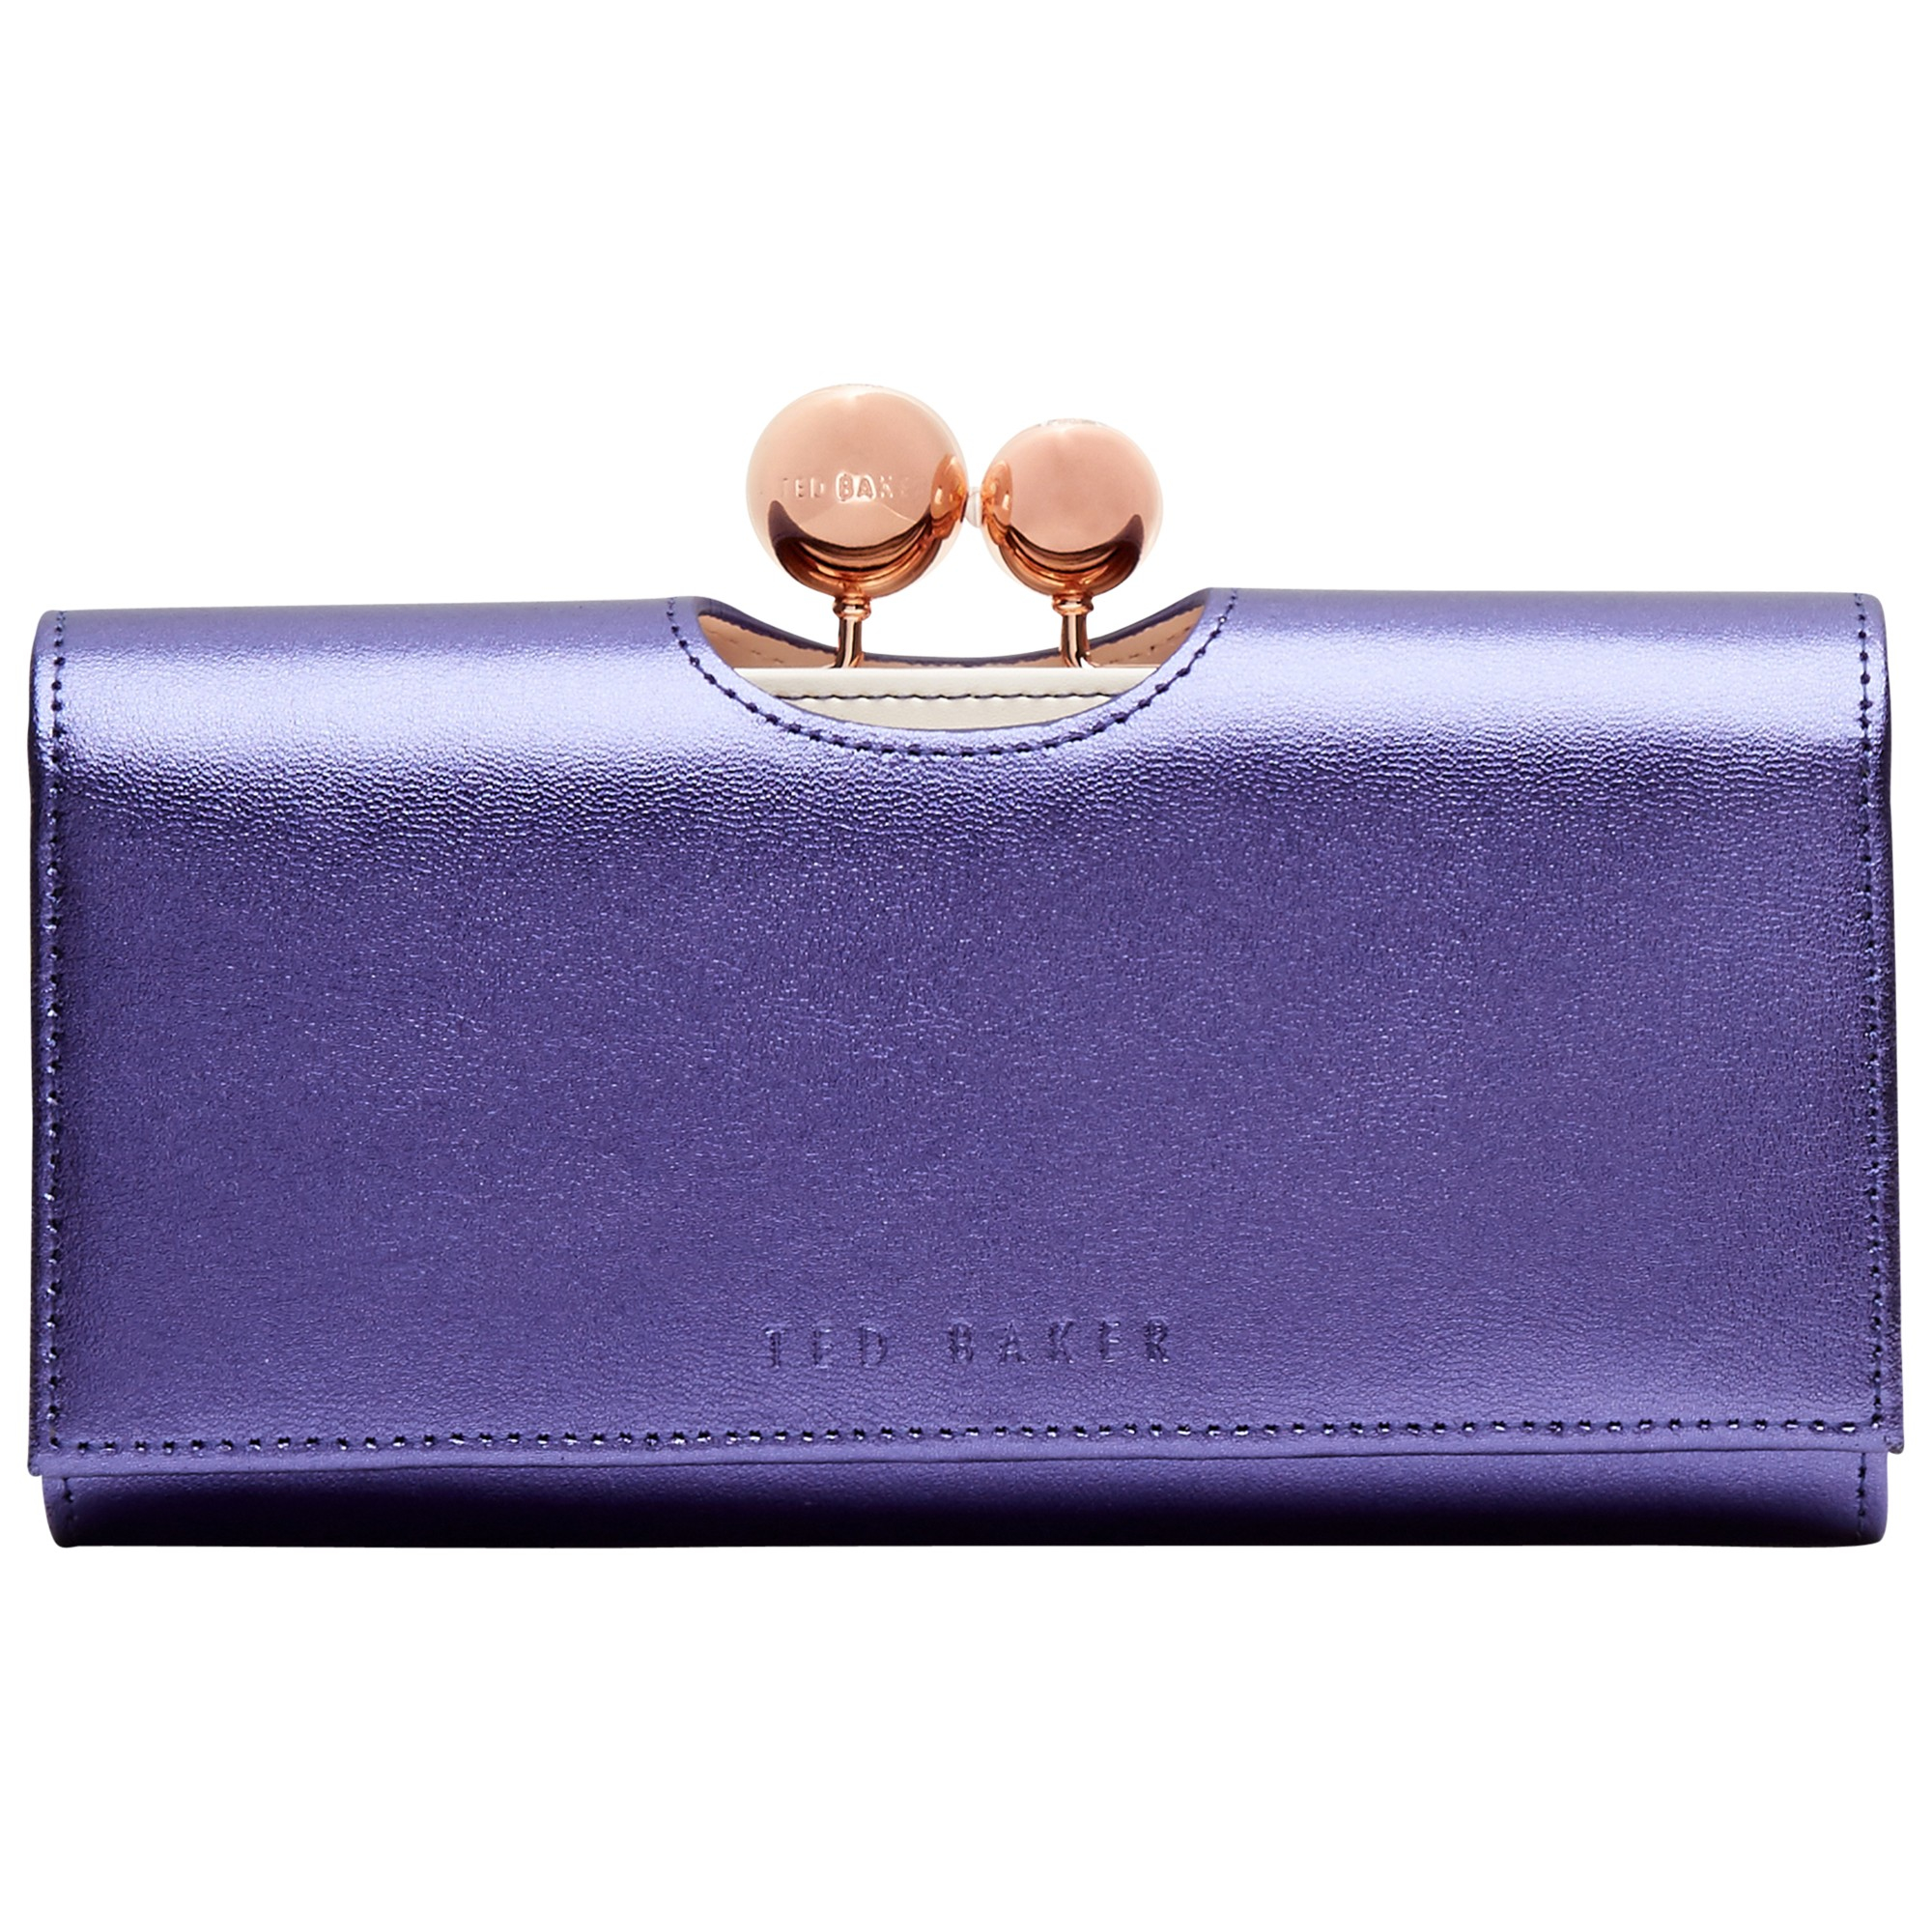 e770febbfd5e1 Ted Baker Leather Crystal Bobble Matinee Purse in Blue - Lyst